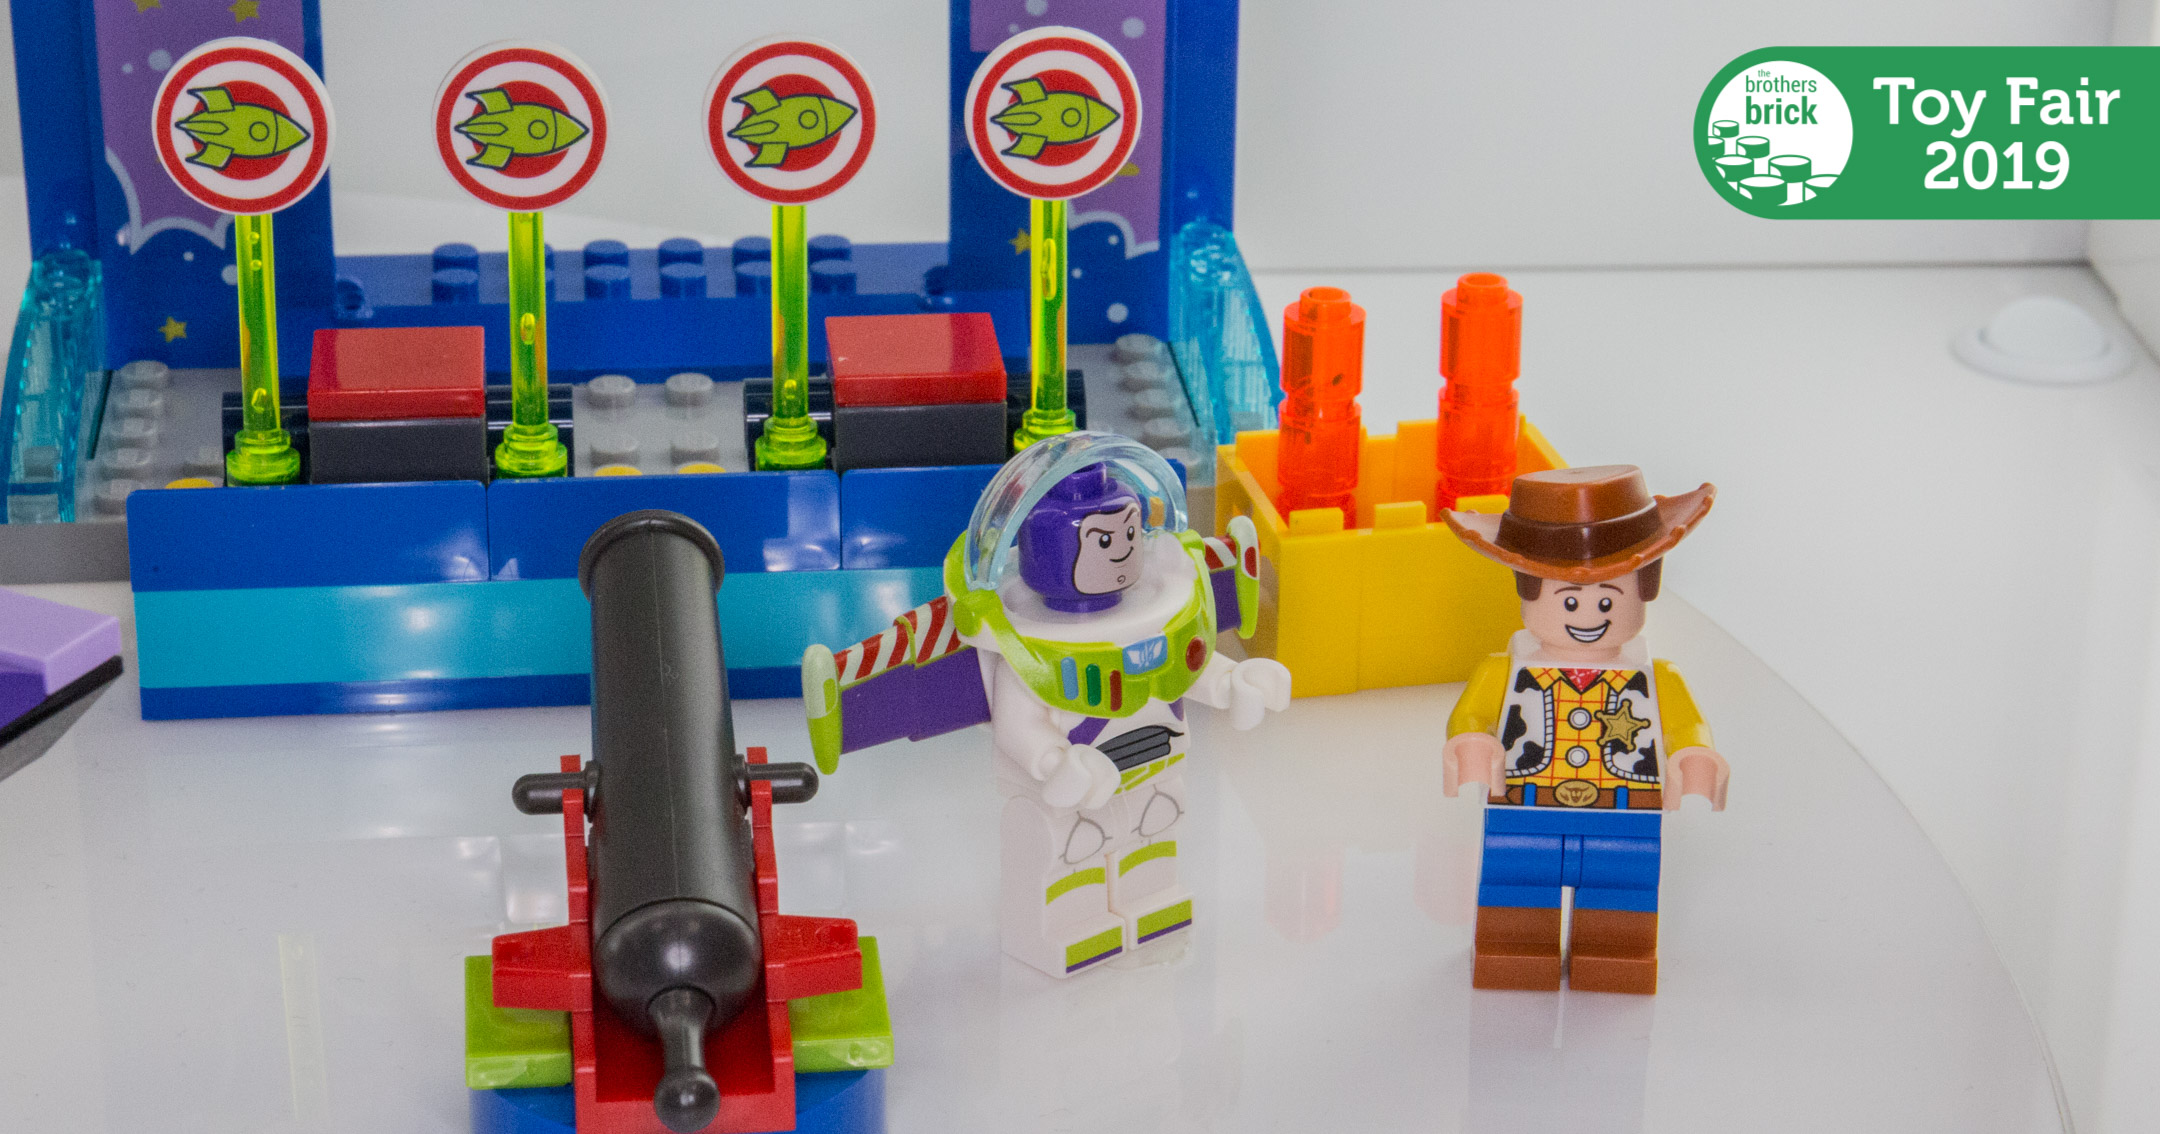 Toy Fair New York 2019 LEGO Toy Story 4 FB-1 | The Brothers Brick | The Brothers Brick